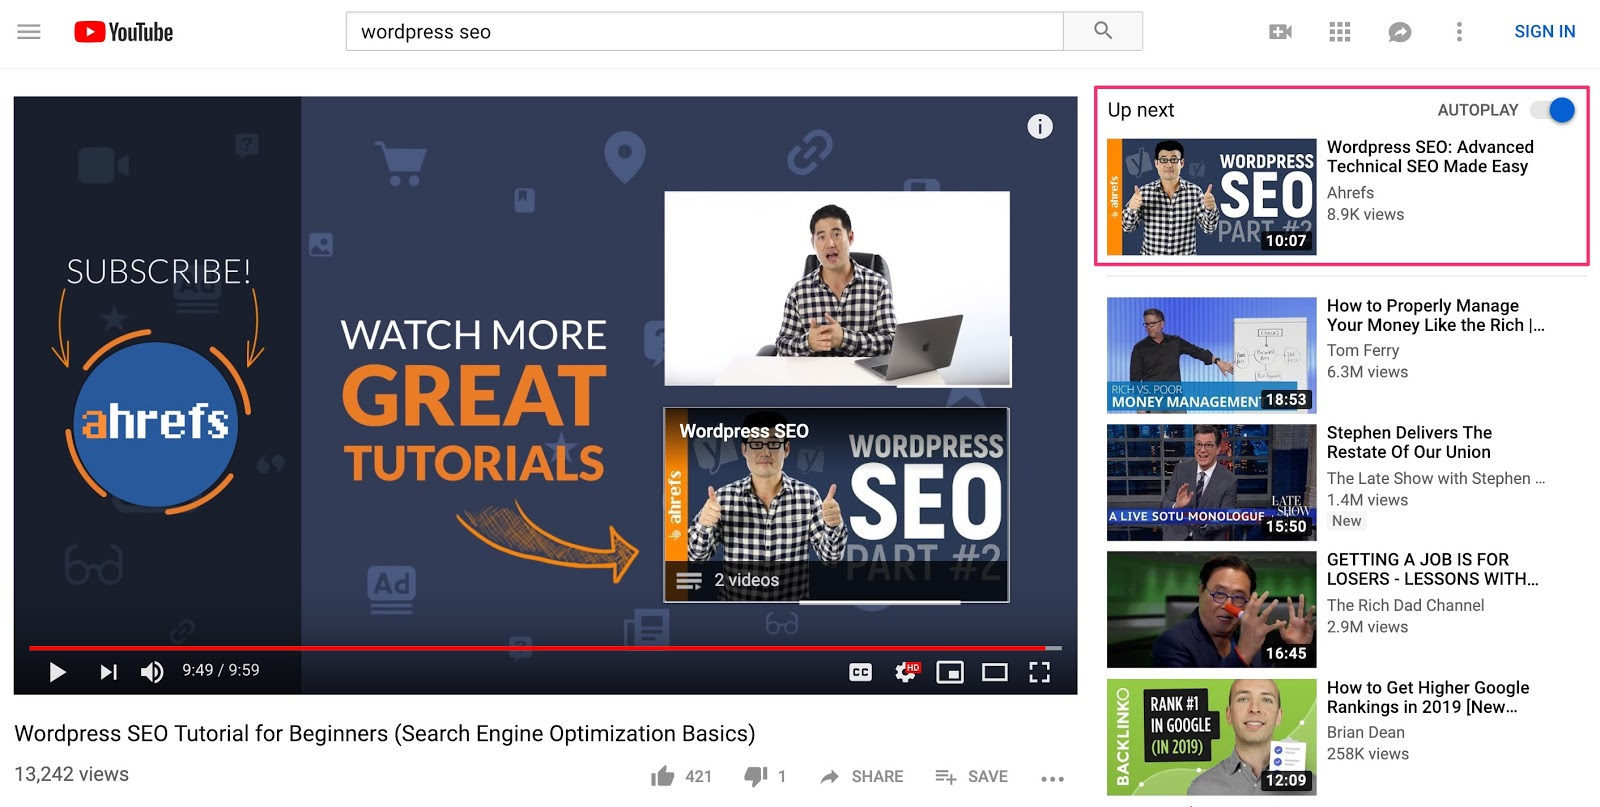 "youtube suggested video"" srcset=""https://i1.wp.com/ahrefs.com/blog/wp-content/uploads/2019/03/youtube-suggested-video.jpg?ssl=1 1600w, https://ahrefs.com/blog/wp-content/uploads/2019/03/youtube-suggested-video-768x387.jpg 768w, https://ahrefs.com/blog/wp-content/uploads/2019/03/youtube-suggested-video-680x343.jpg 680w"" sizes=""(max-width: 1600px) 100vw, 1600px"